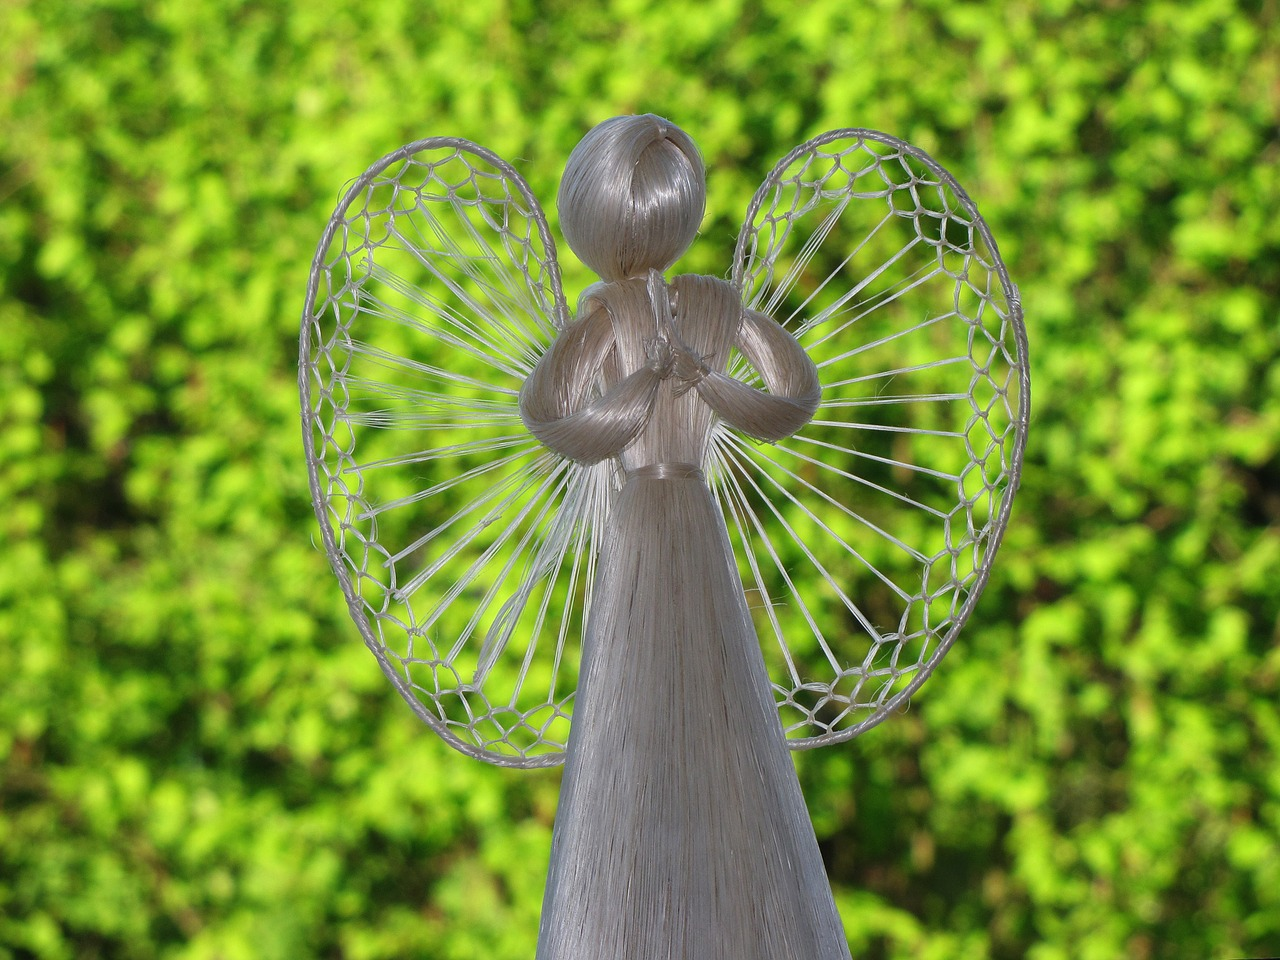 straw angel angel natural angels free photo